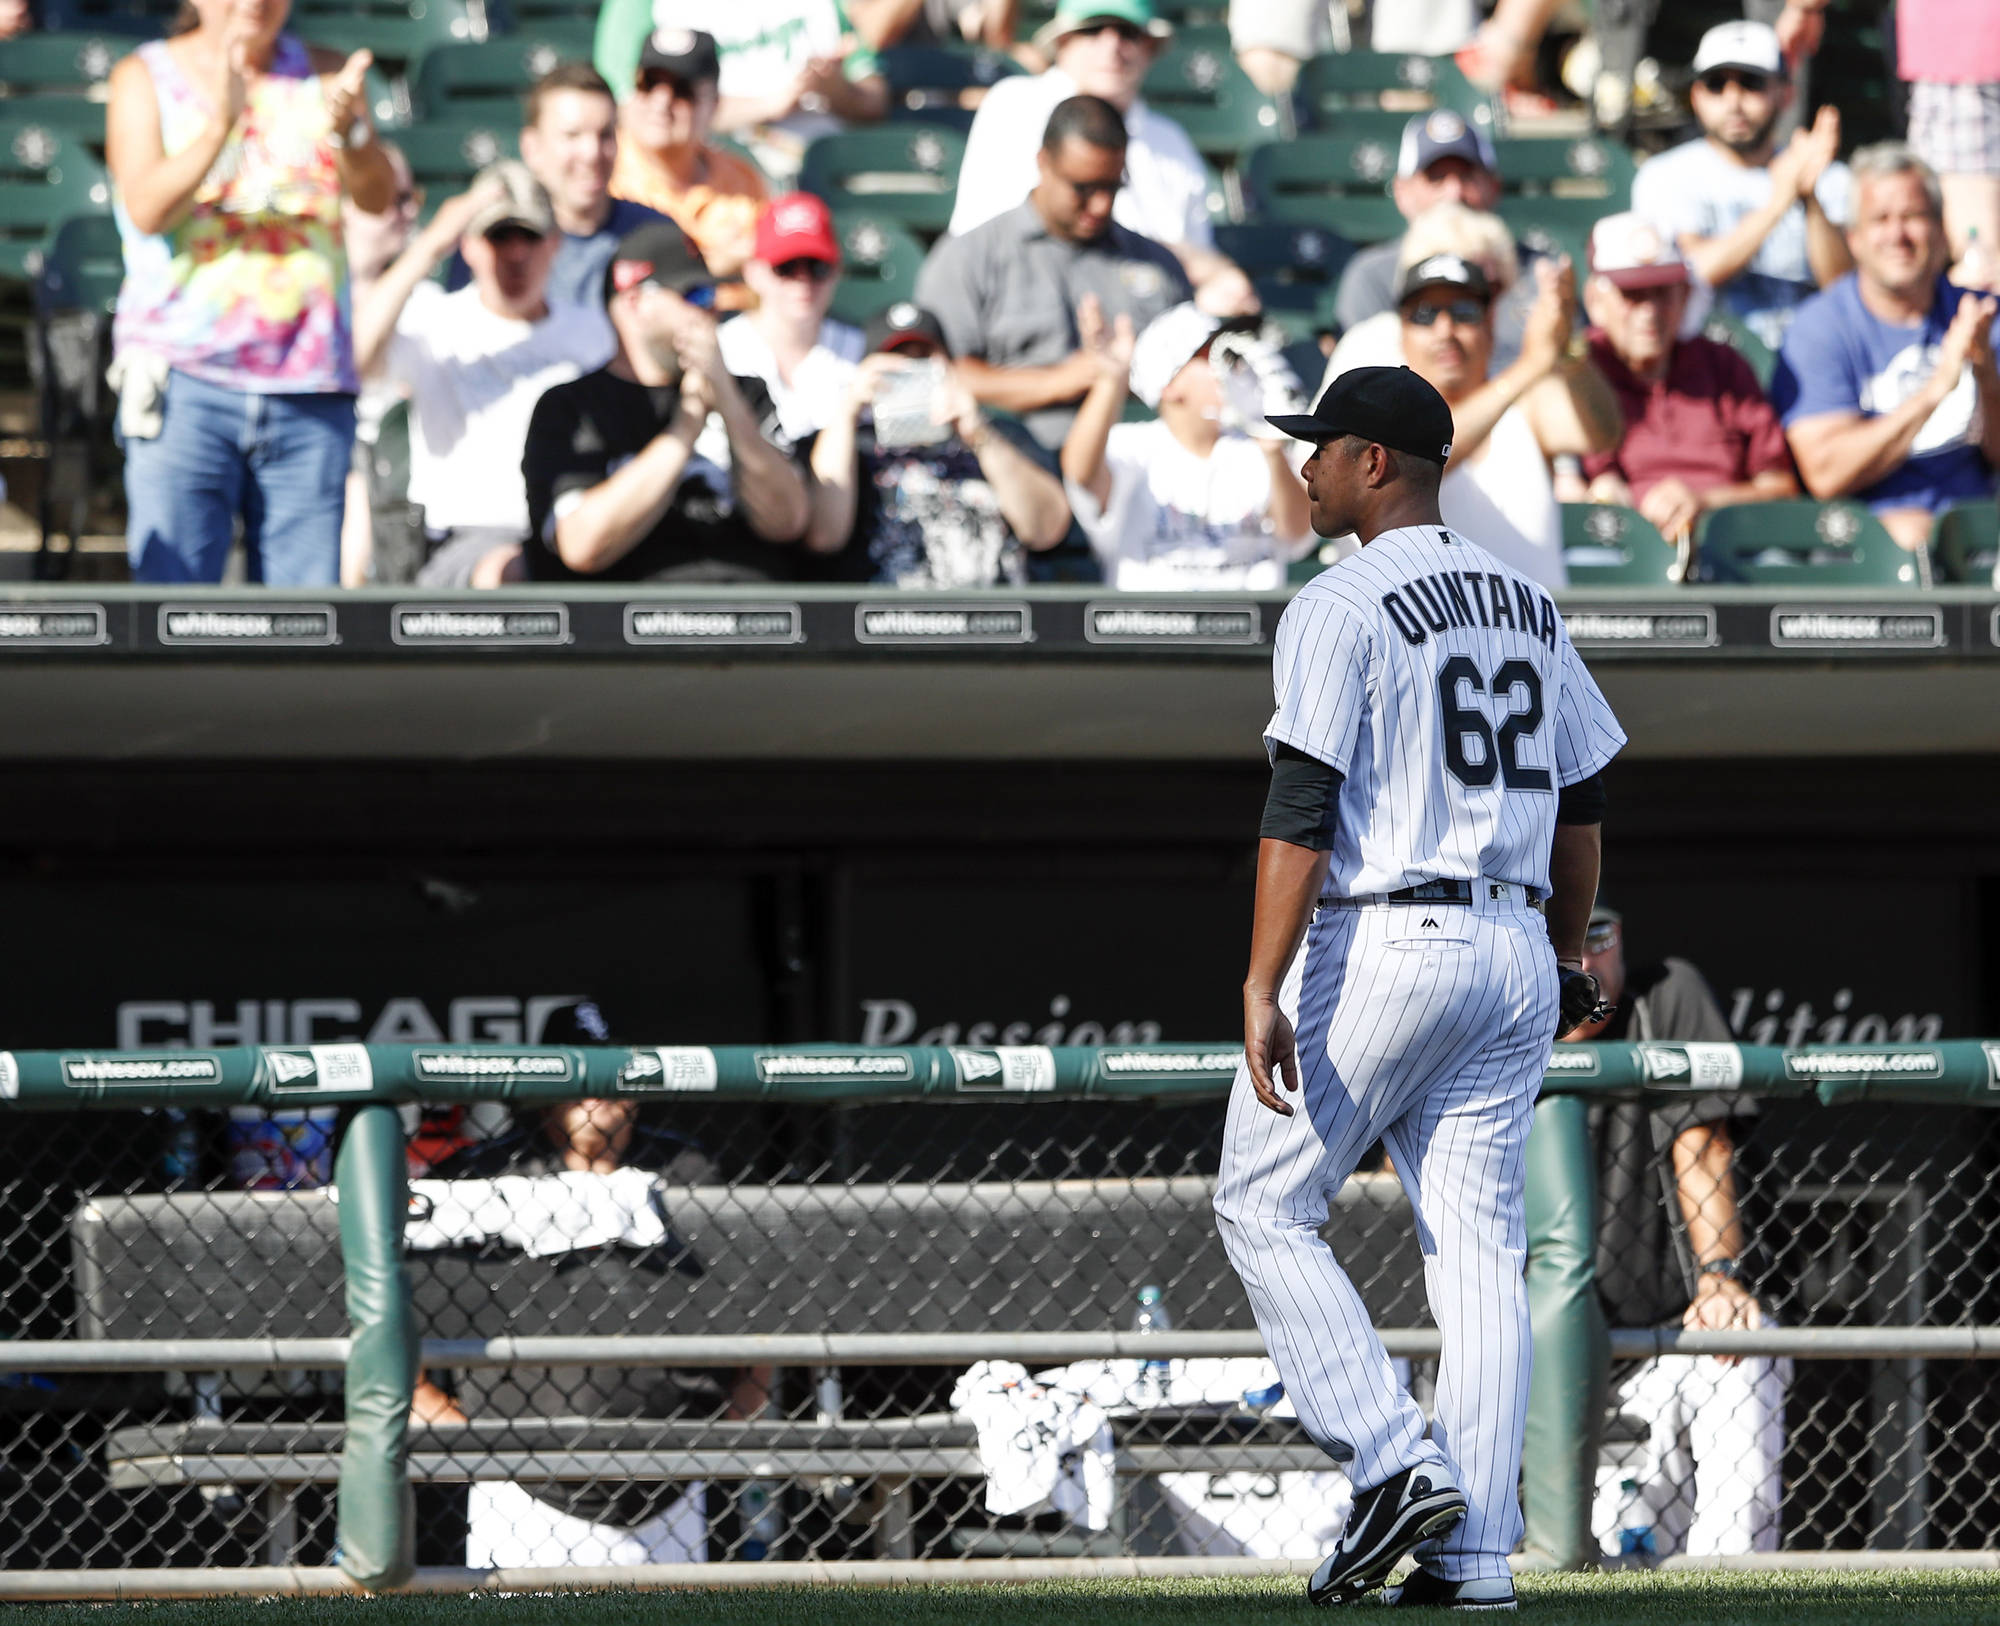 If the White Sox were to move Jose Quintana, where would he go?